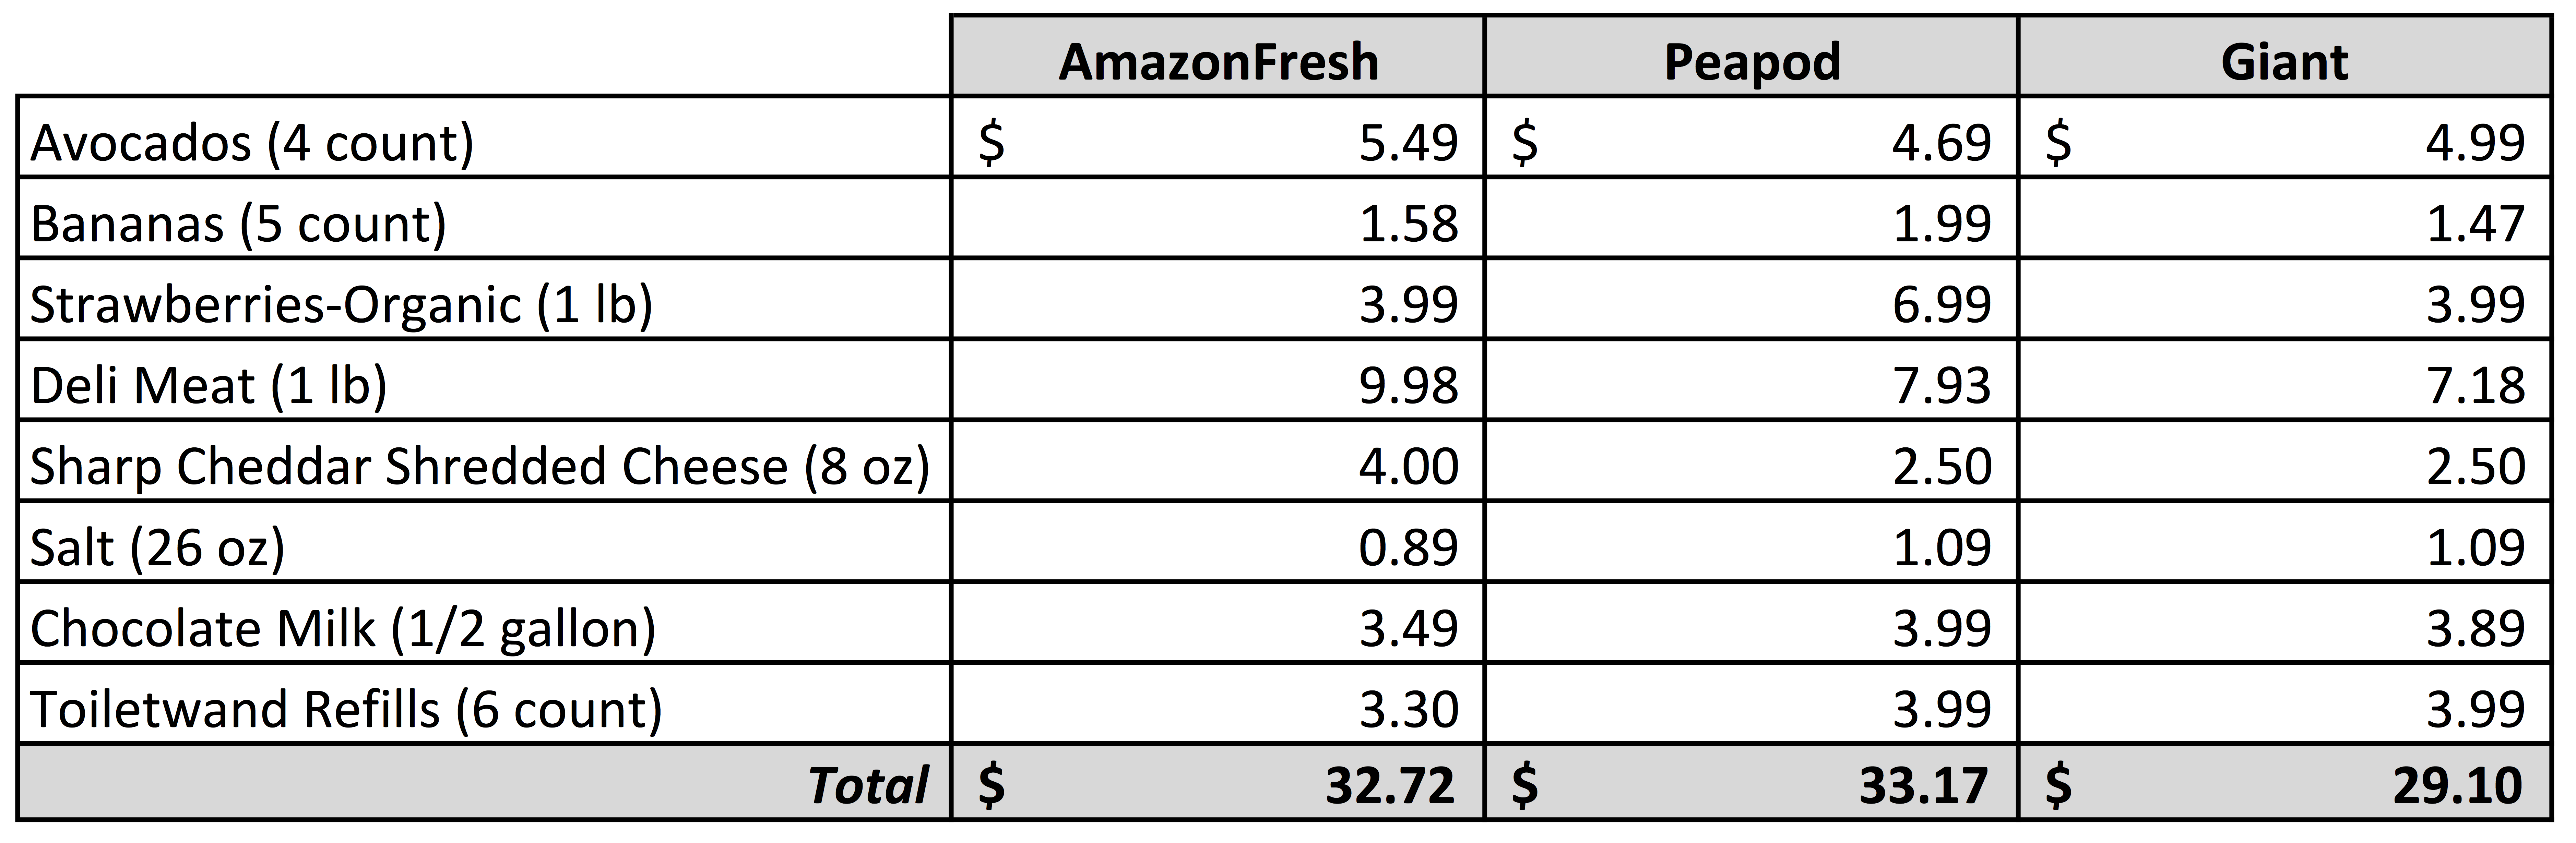 it looks like shopping at the grocery store has an edge over online shopping when it comes to costs even before considering service fees